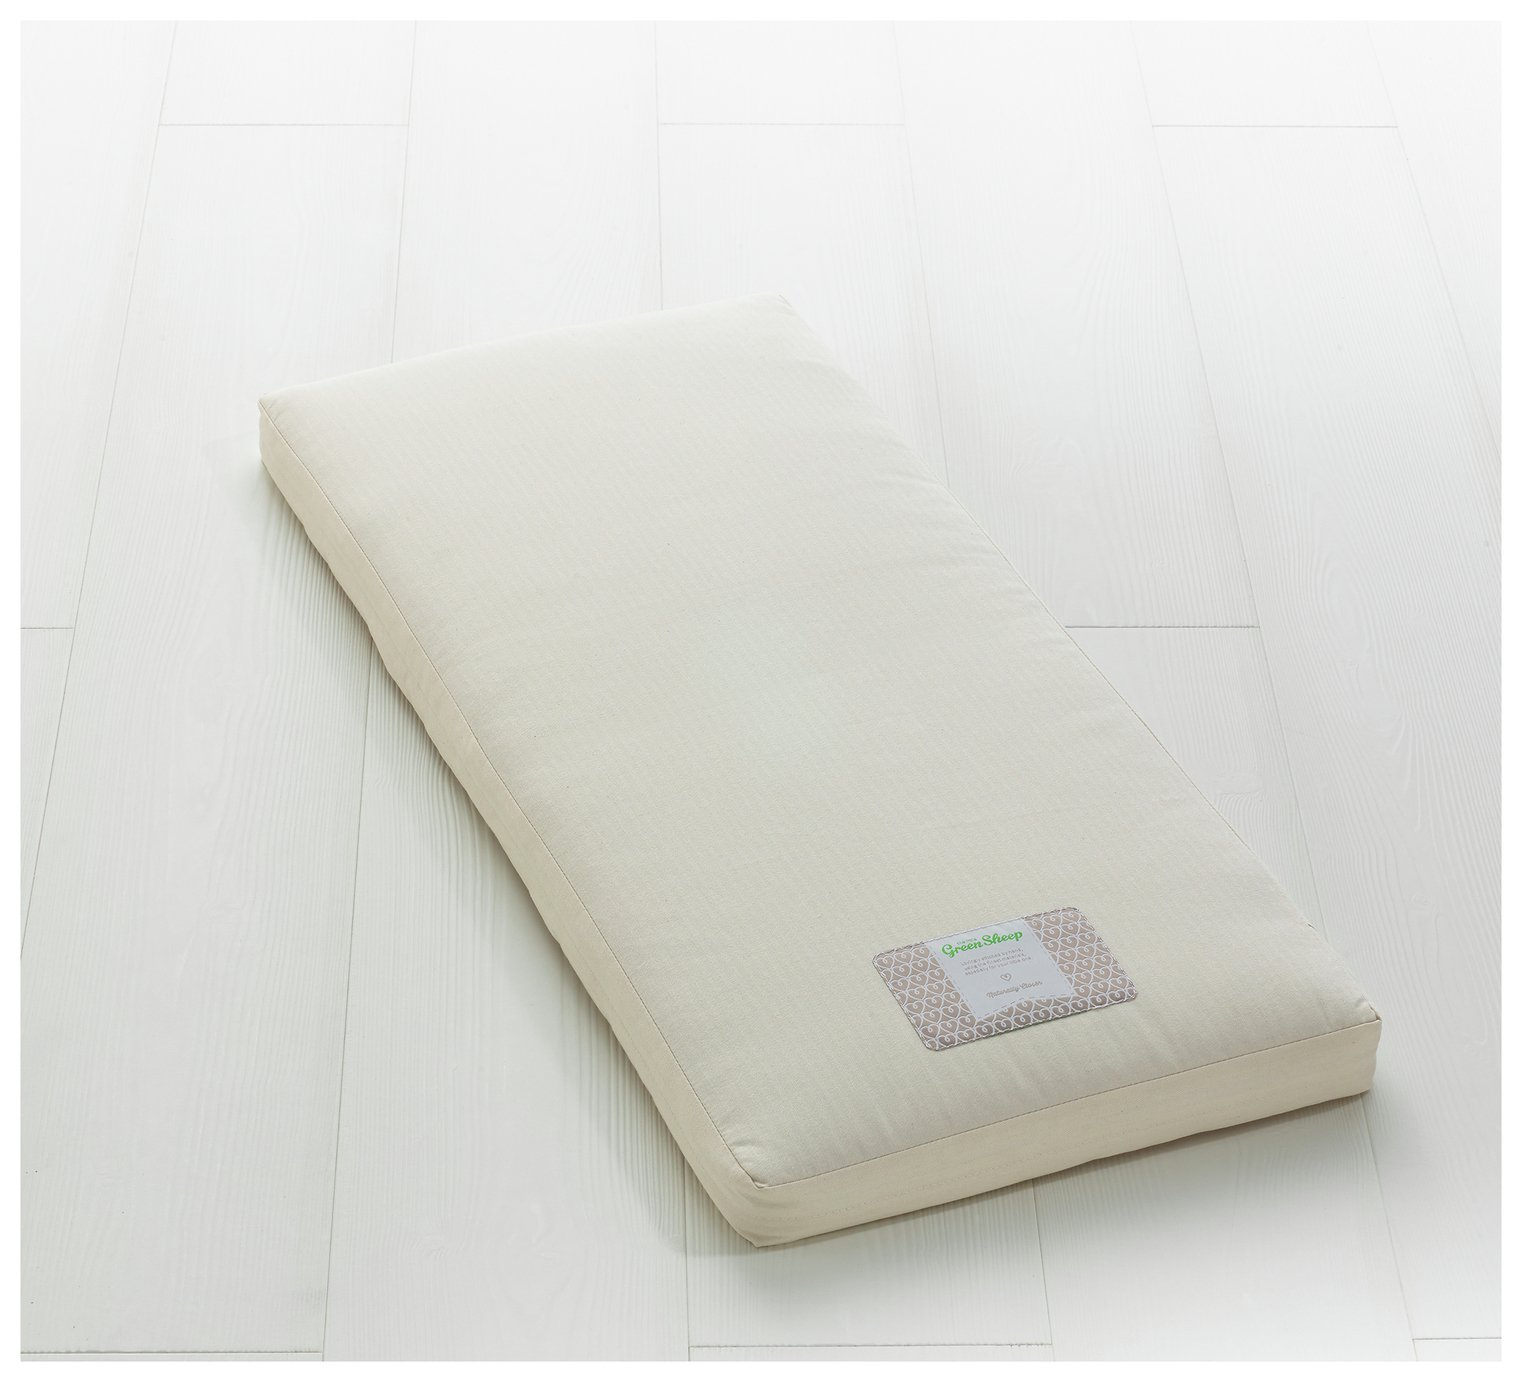 38 X 89cm Crib Mattress We Found These Kids Mattresses Mattress Comparison